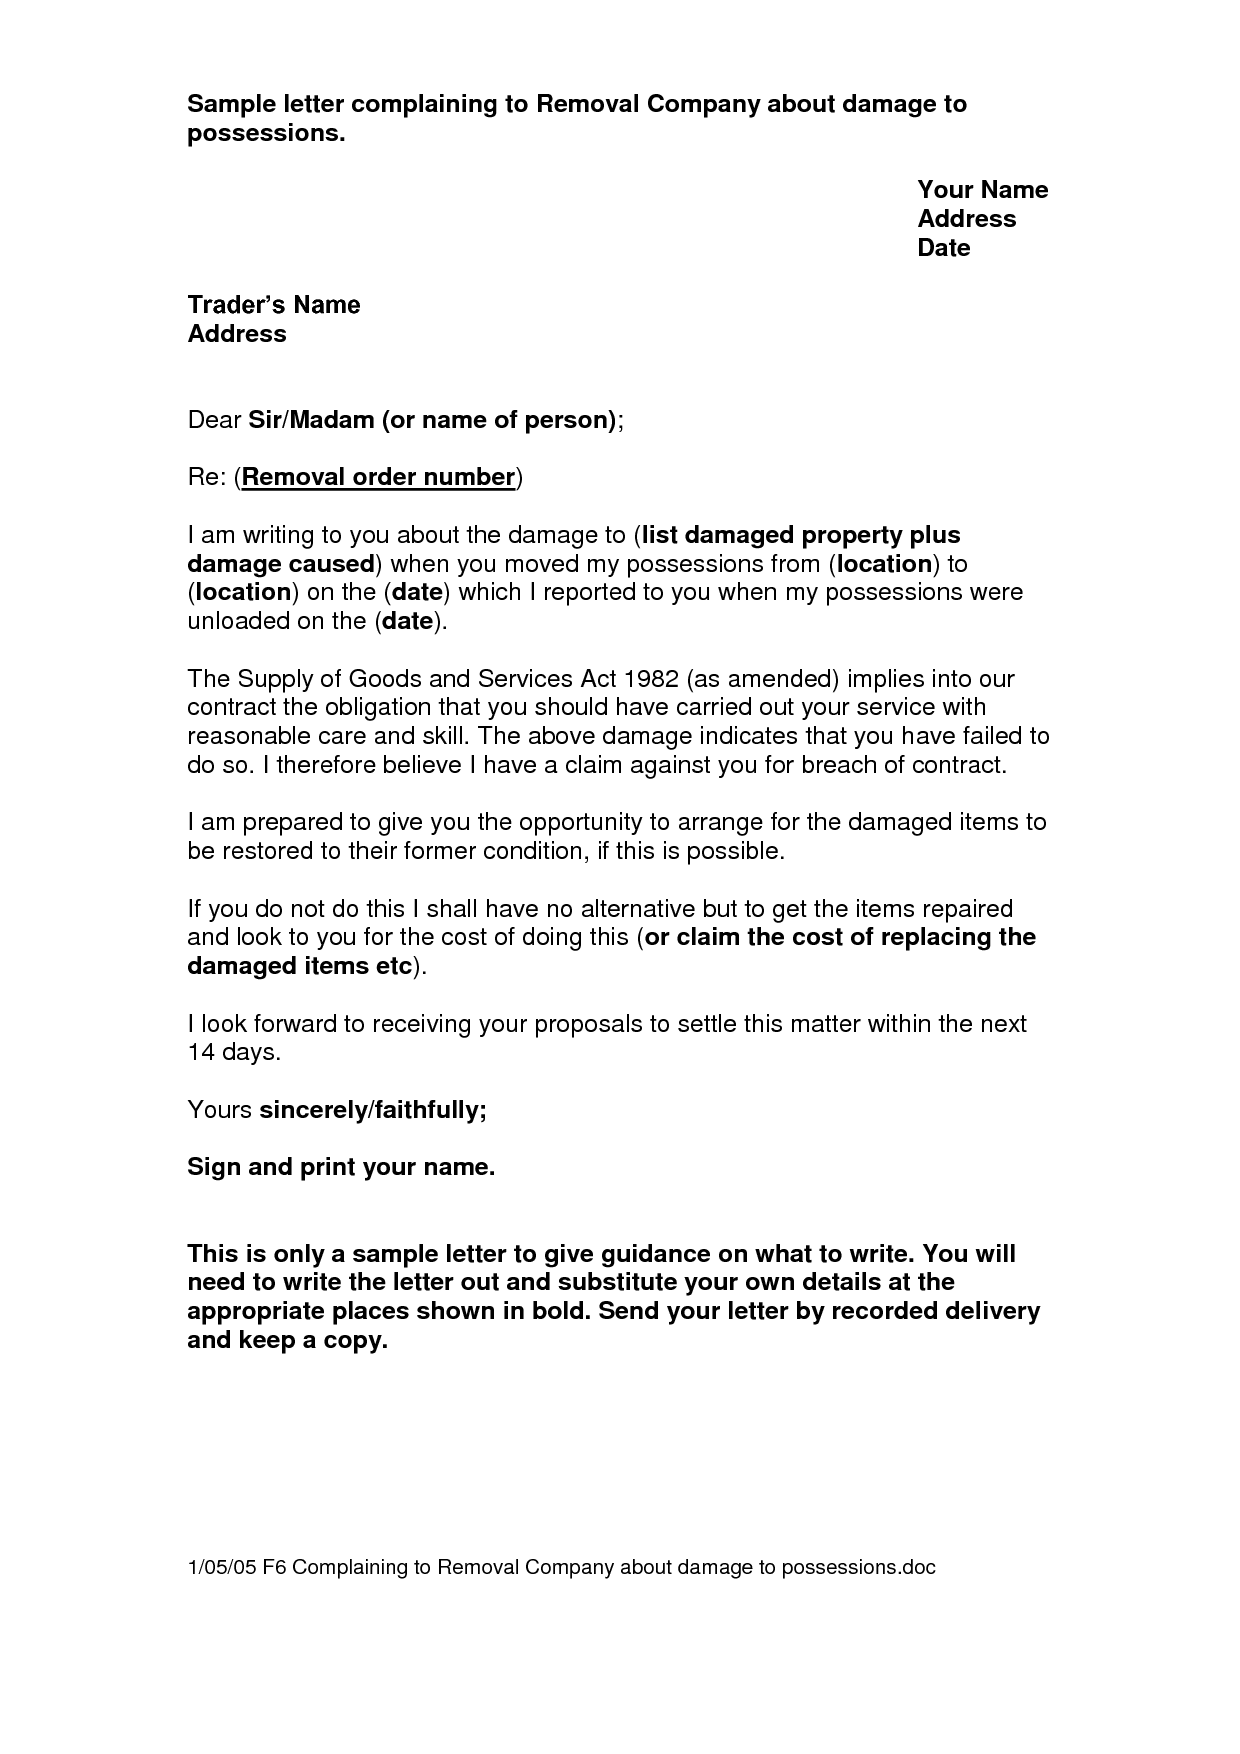 Sample Letter Complaining To Removal Company About Damage To How To Remove Removal Company Lettering